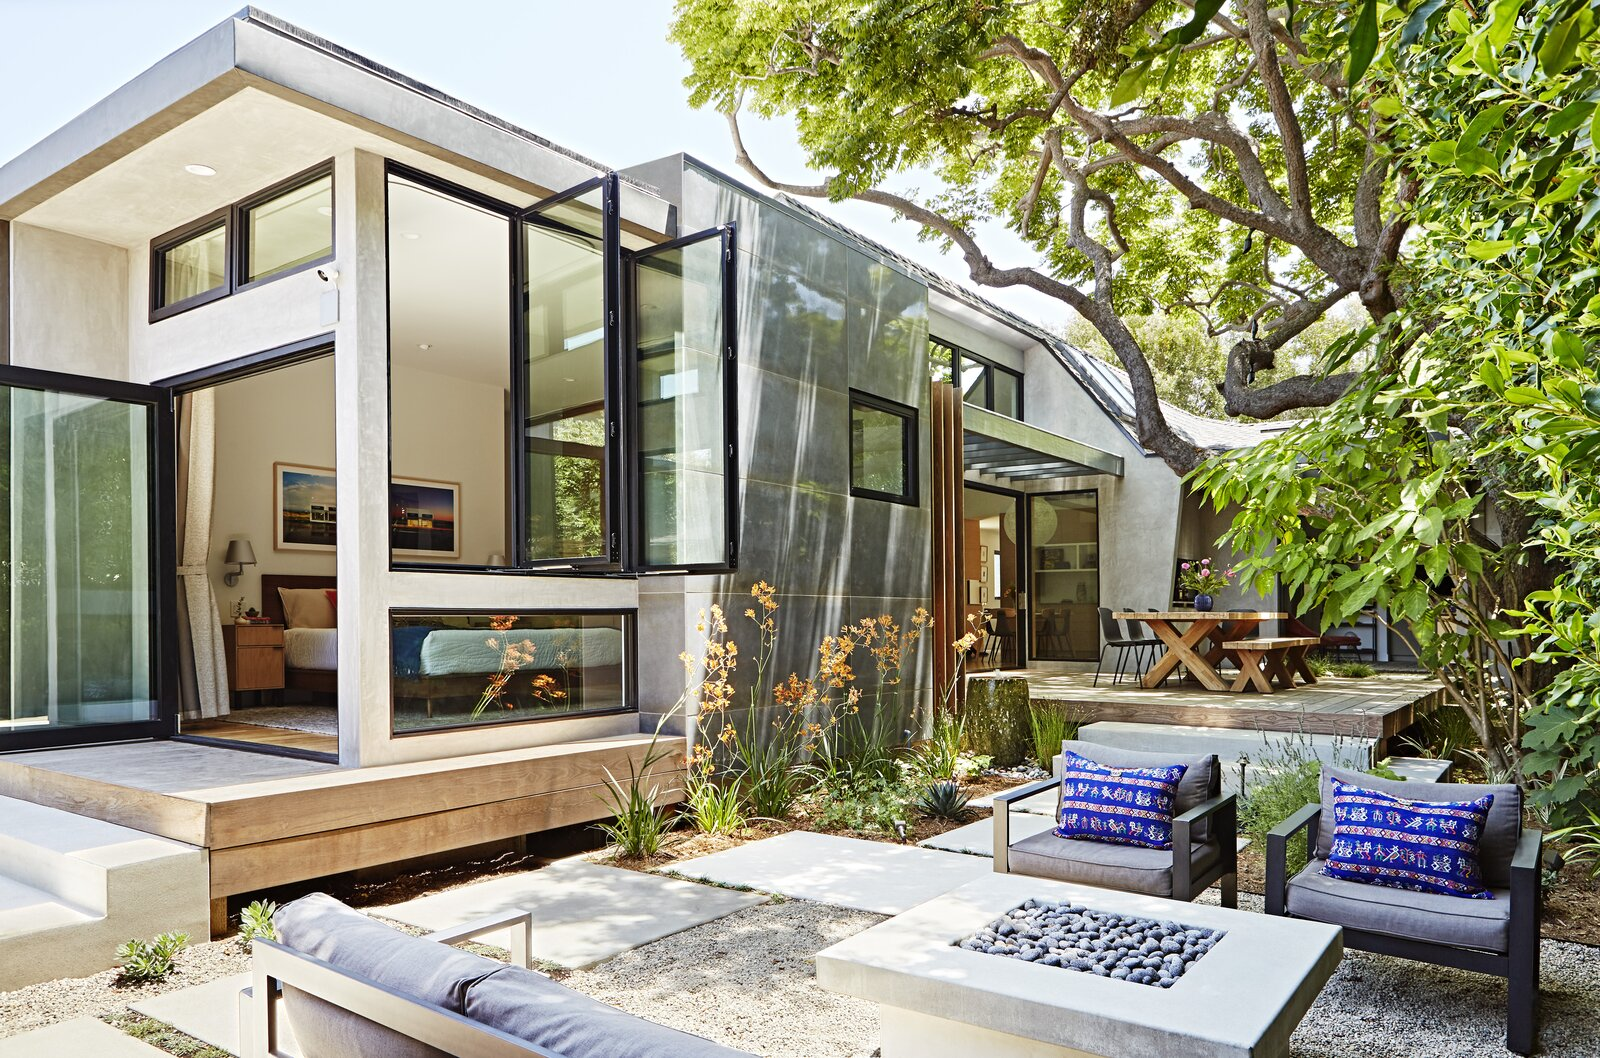 Outdoor, Walkways, Hardscapes, Back Yard, Trees, Grass, Shrubs, Gardens, and Large Patio, Porch, Deck The large Chinese Flame tree can be fully enjoyed from the two outdoor seating areas.  Photo 5 of 8 in Budget Breakdown: This Sunny 1939 Santa Monica Bungalow Shines After a $765K Remodel